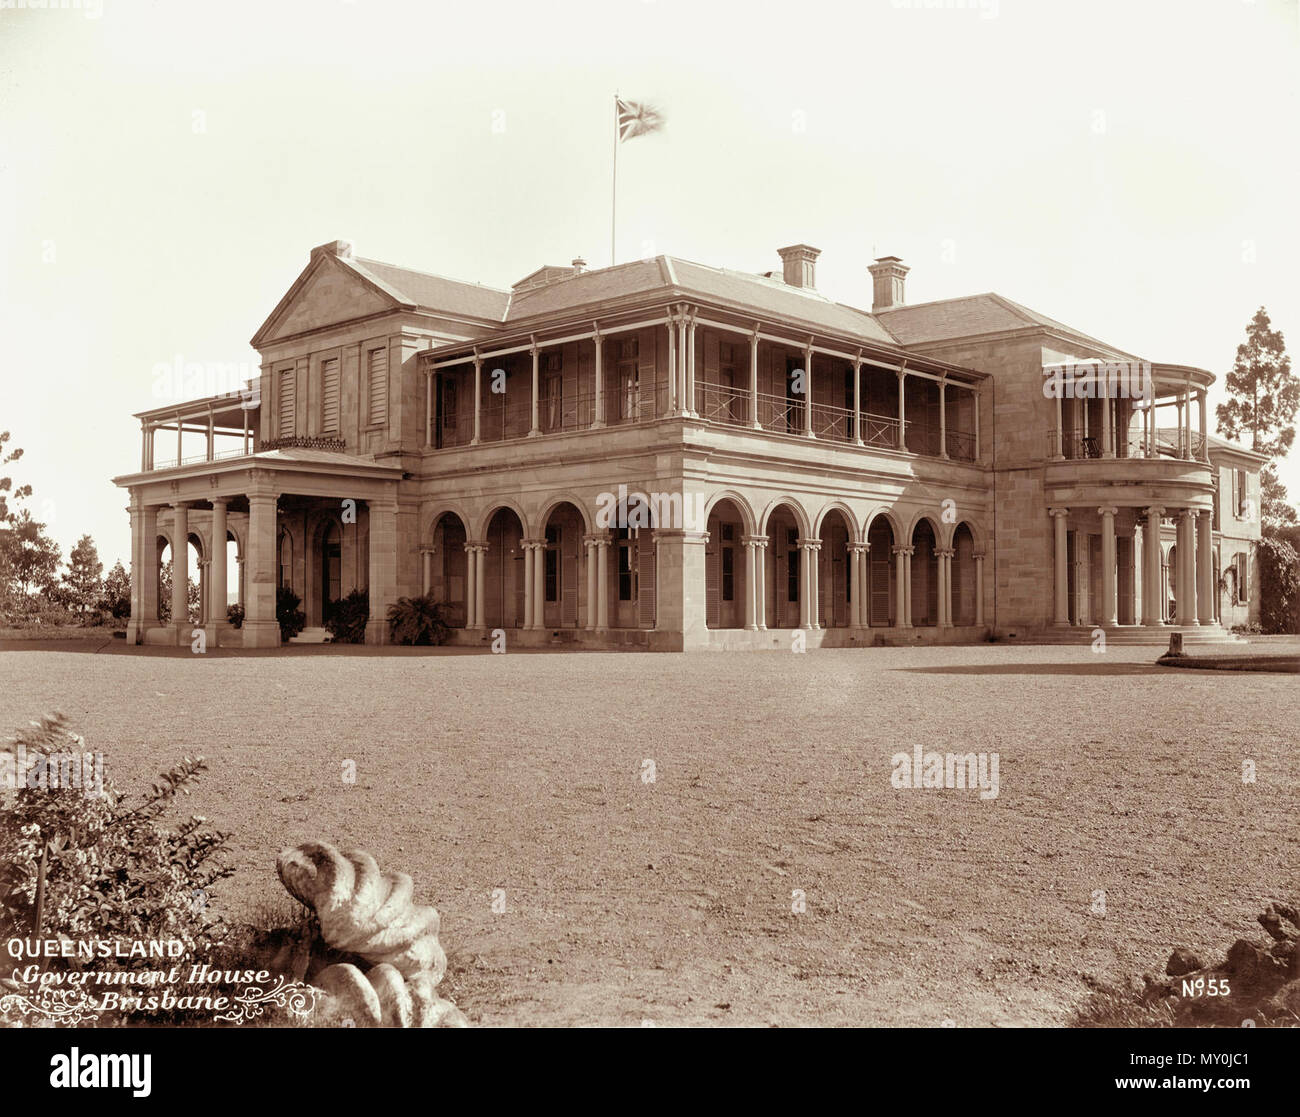 Government House, Brisbane, 1898. Johann Heussler, a wealthy Brisbane merchant purchases 22 acres of land from the Government in 1862 and made plans to build a house there. Local architect Benjamin Backhouse designed a house in 1865, to be constructed from stone excavated on site combined with a cement and lime mixture.  The Heussler family lived at Fernberg from 1865 until 1872 when the high cost of upkeep forces foreclosure on the property by the mortgagee.  Sir Arthur Palmer, Premier of Queensland (1870-1874), and later Lieutenant Governor resided in Fernberg from 1872 to 1881.  John Steven - Stock Image